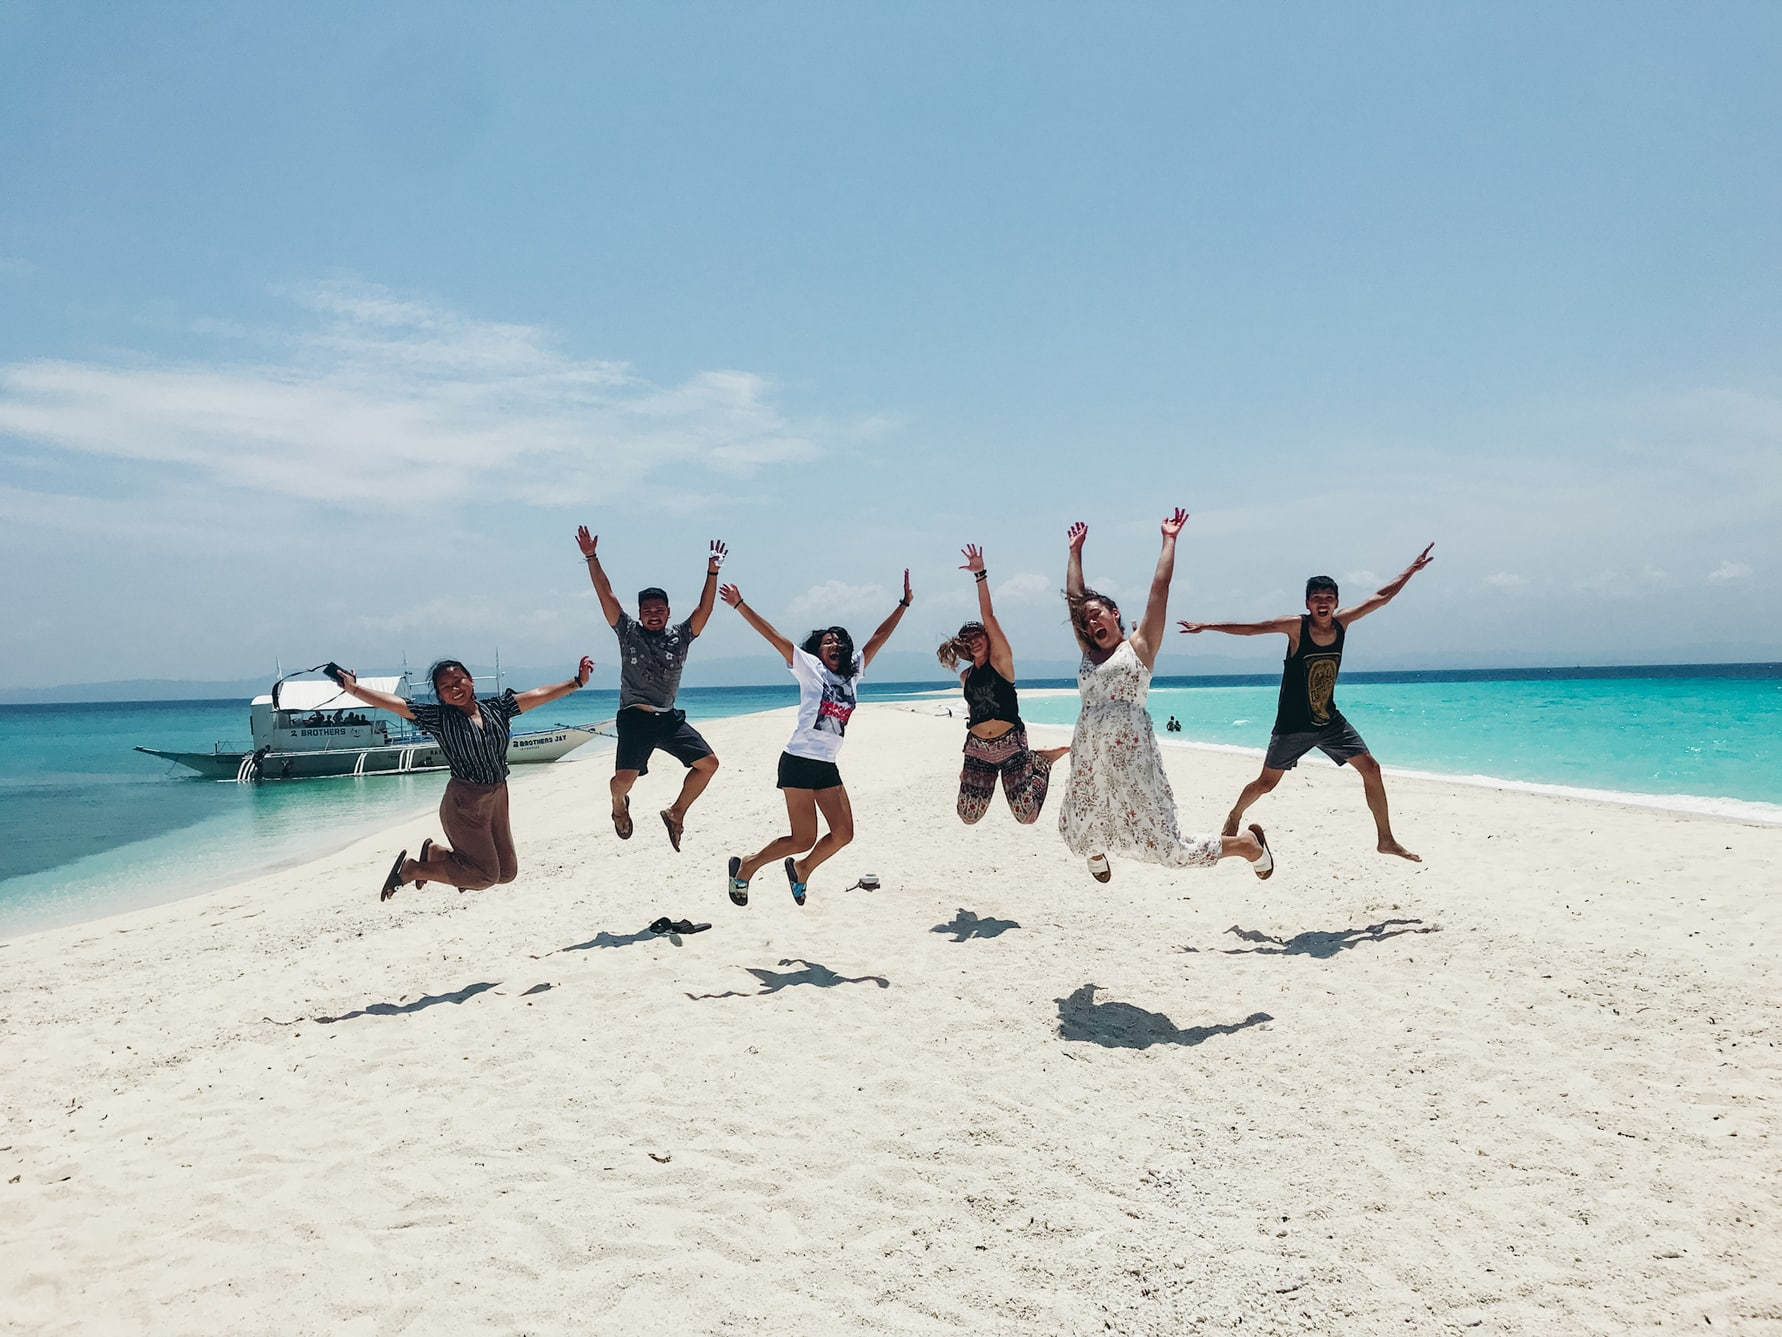 Friends jumping on a small strip of beach in the Philippines